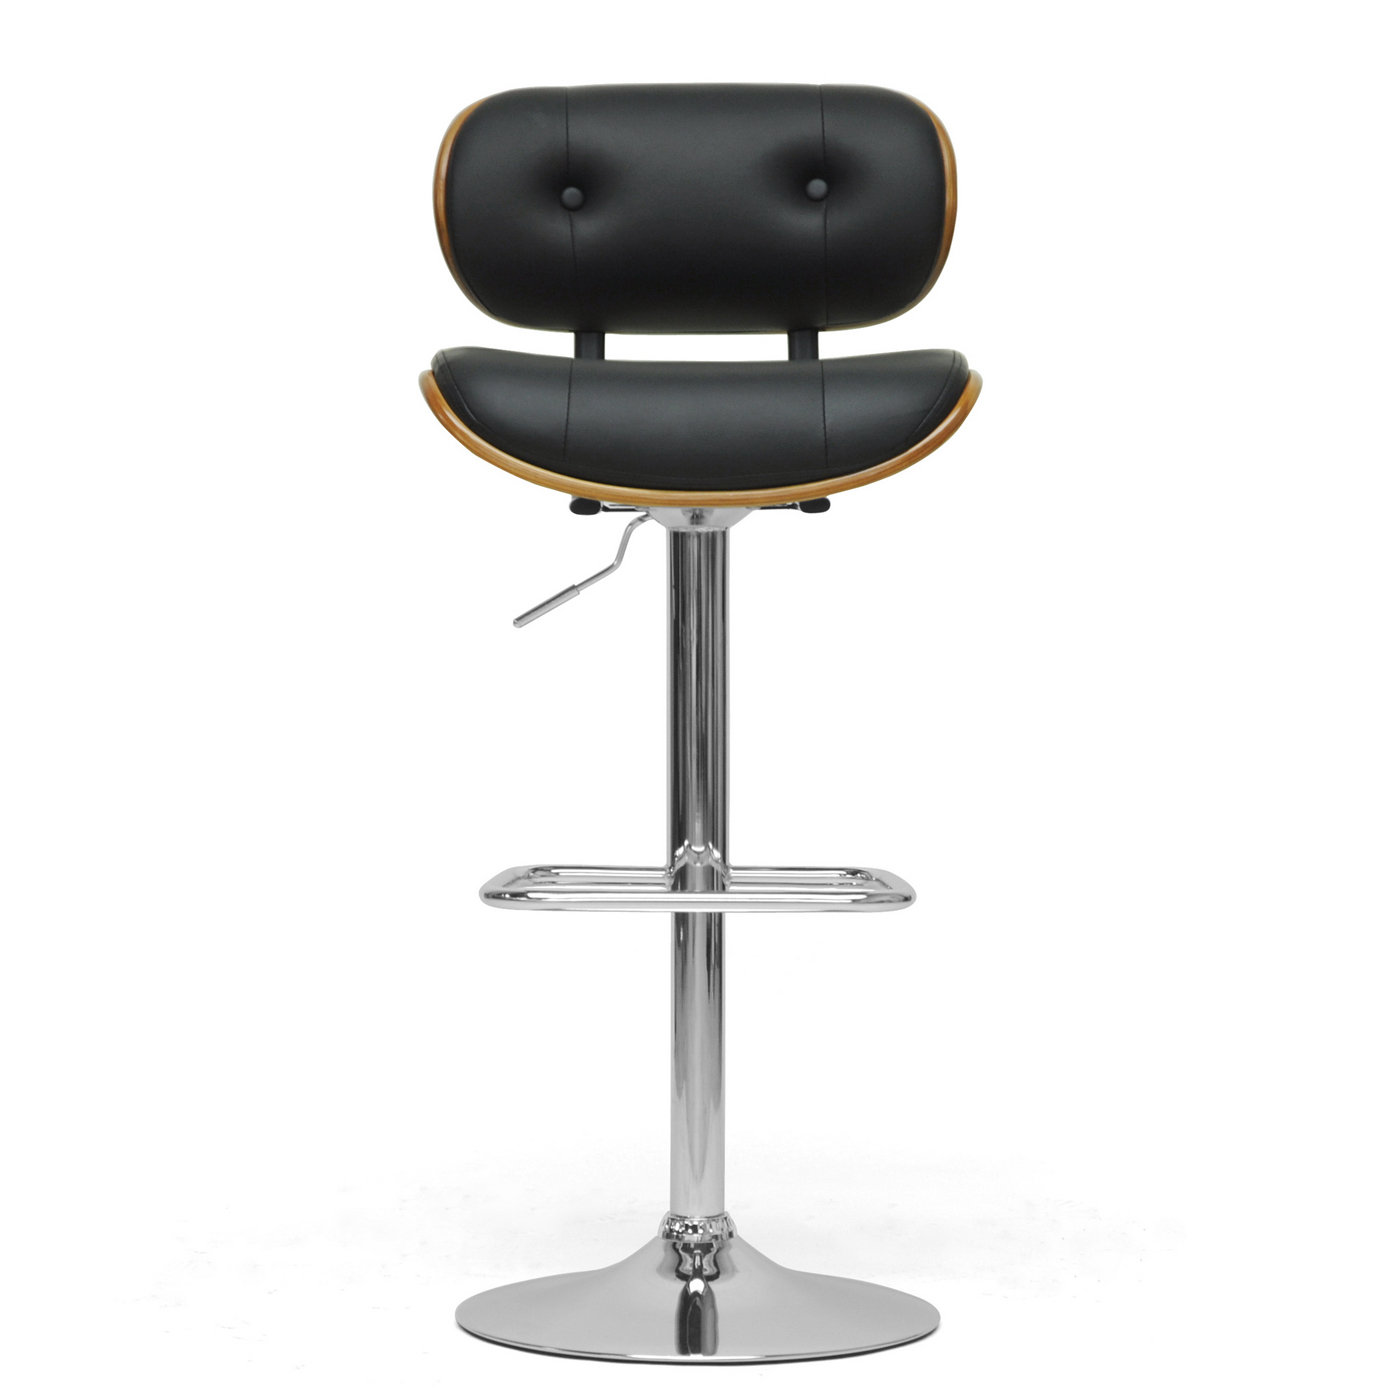 Contemporary Bar Stools ~ Contemporary bar stool walnut and black in modern stools